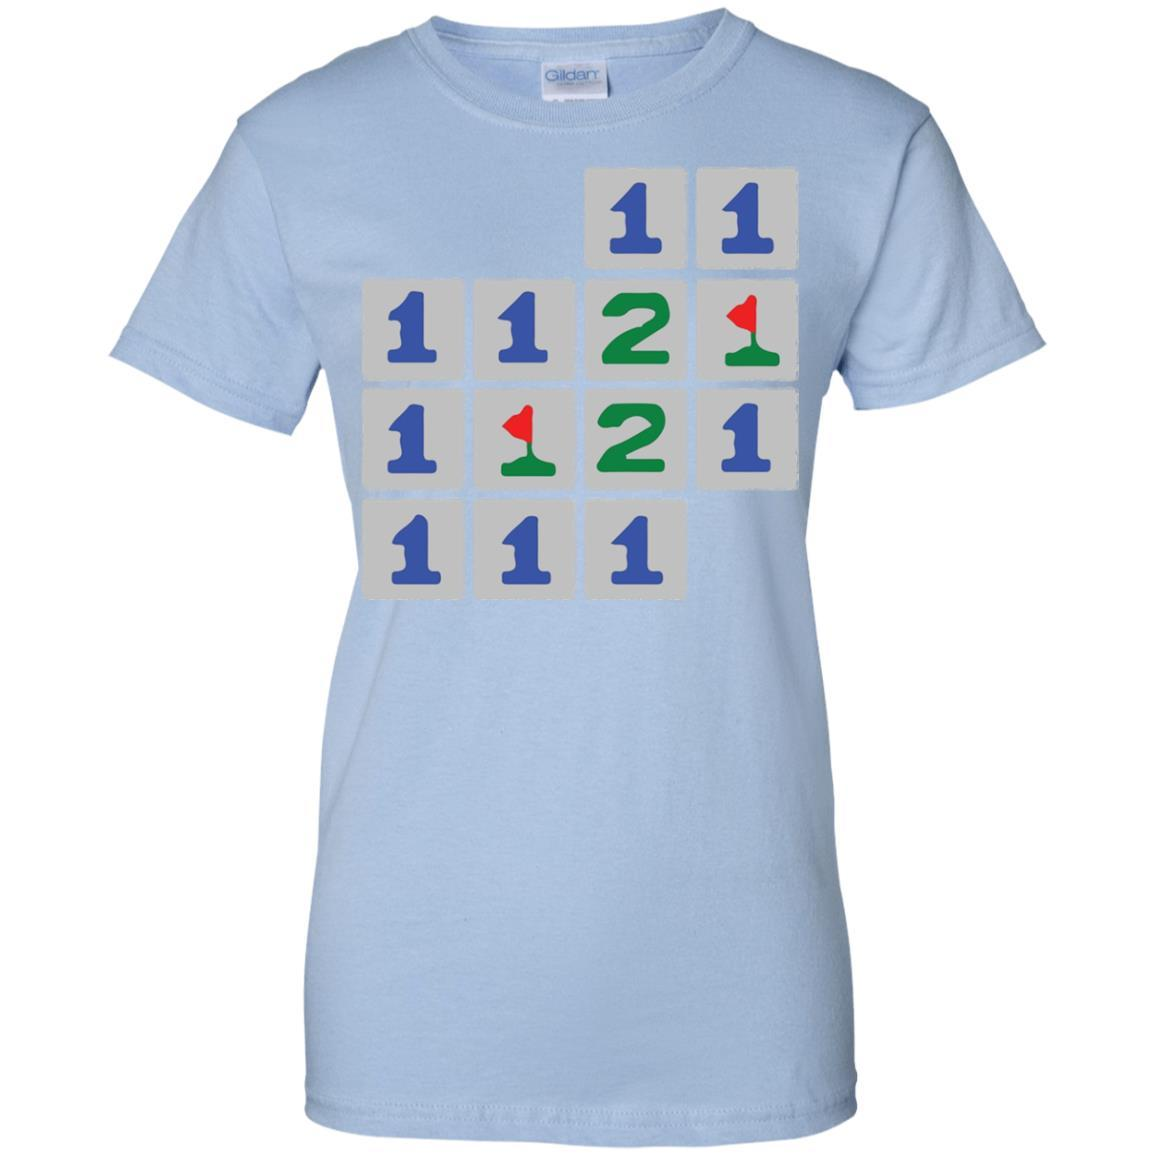 Old School Vintage Minesweeper PC Game Bomb Escape T-Shirt